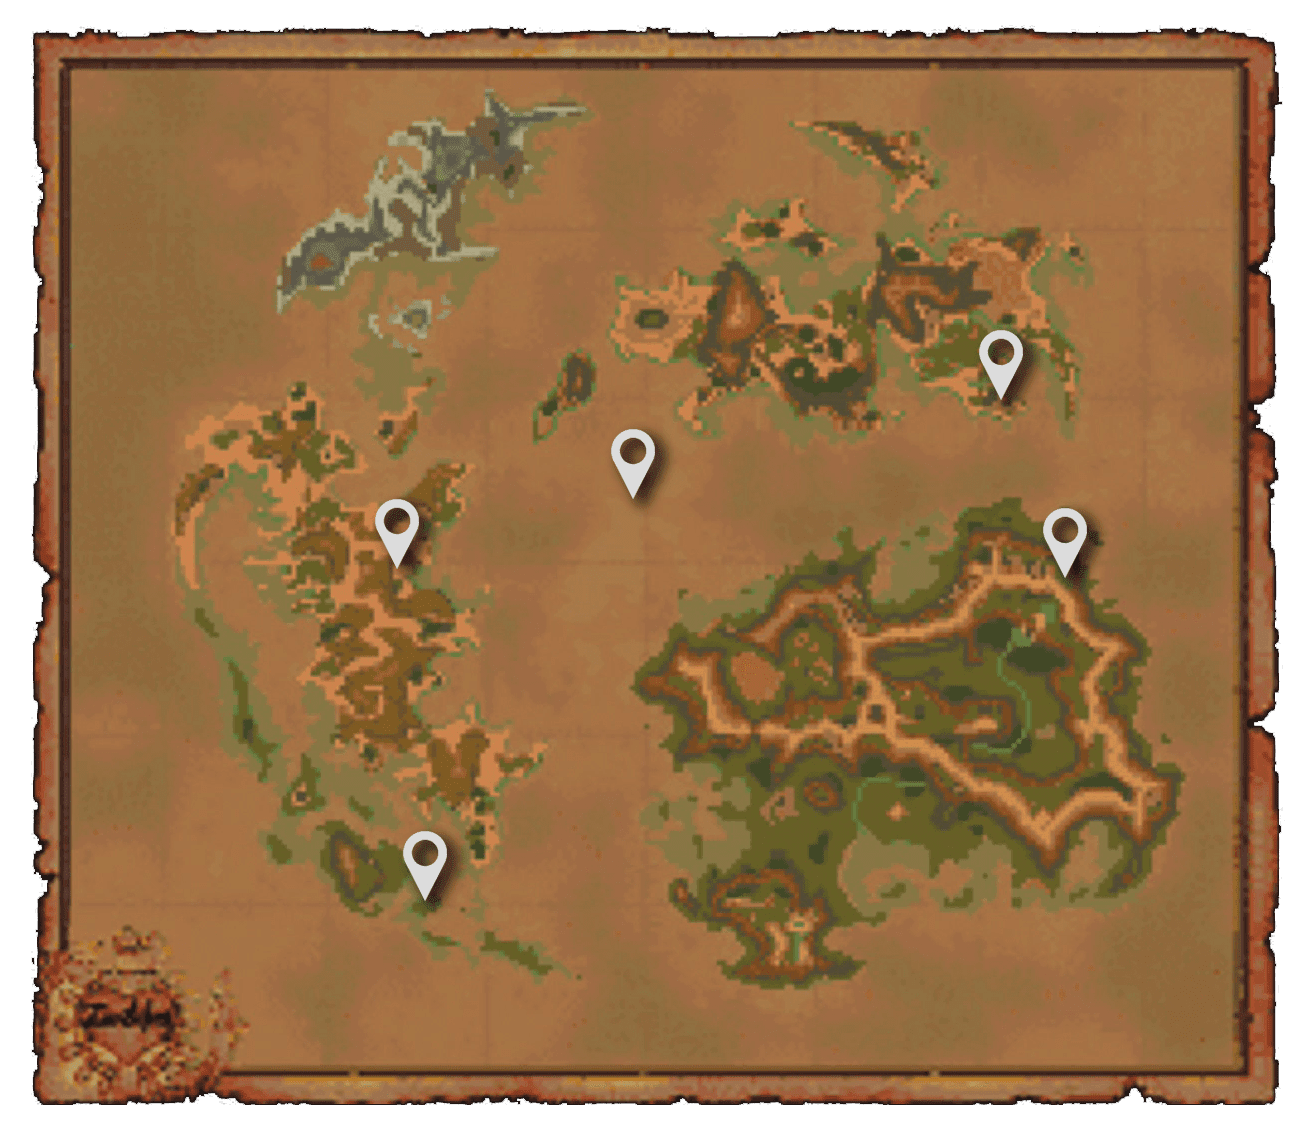 Chocobo's Air Garden Map of Shadow Locations